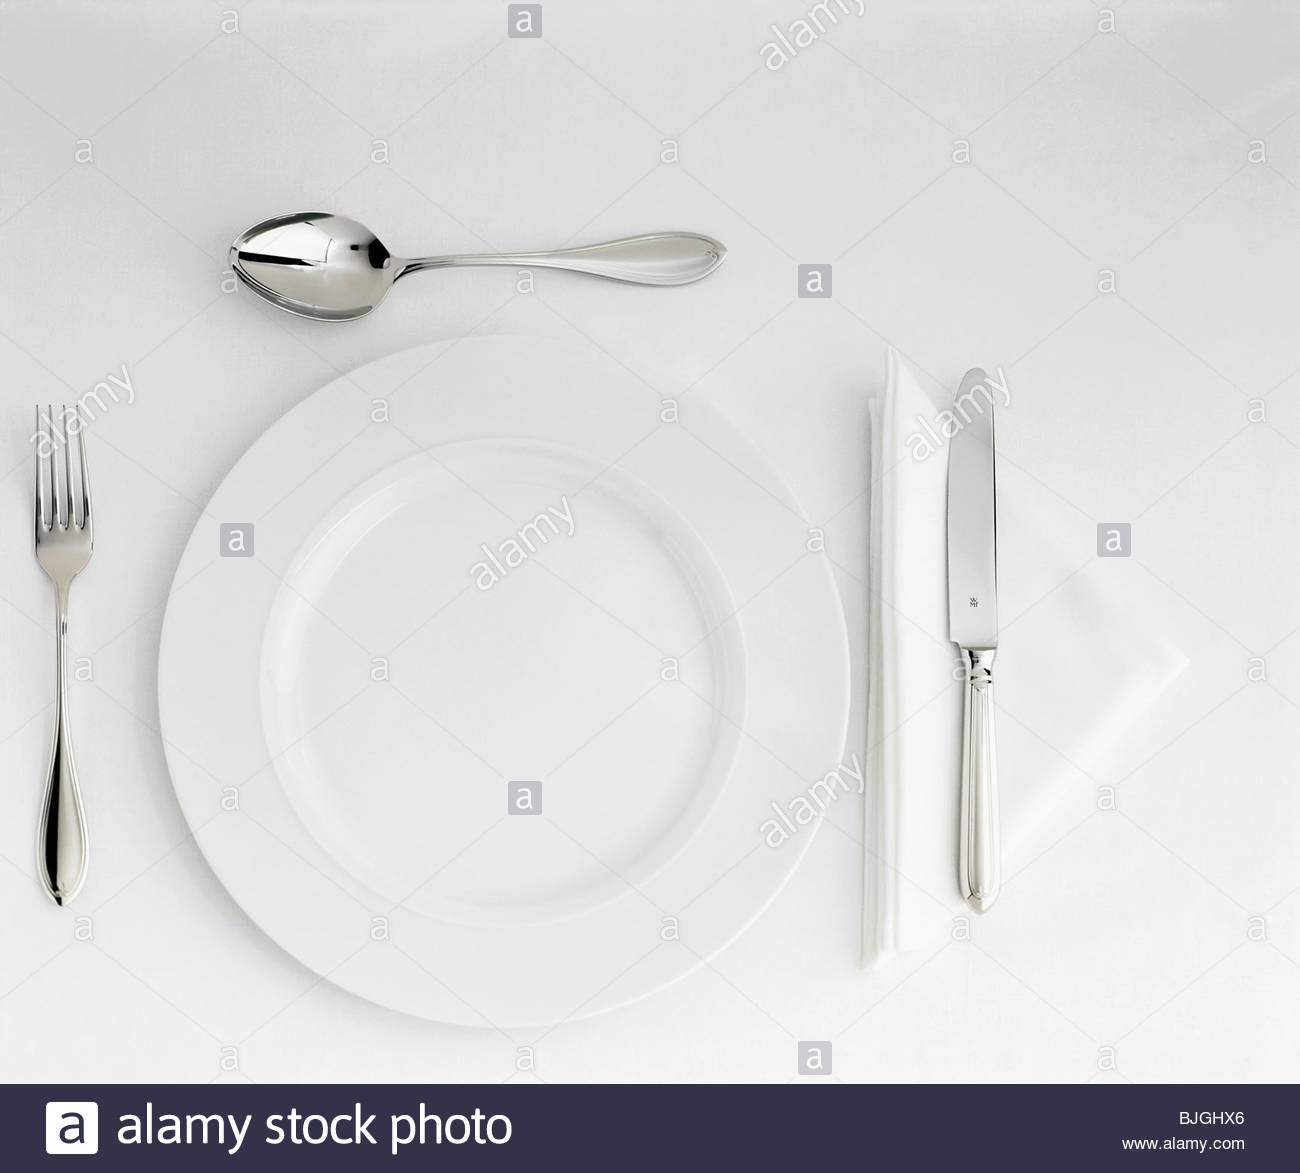 Table Setting with White Plate Cutlery u0026 Triangular Napkin & Table Setting with White Plate Cutlery u0026 Triangular Napkin Stock ...